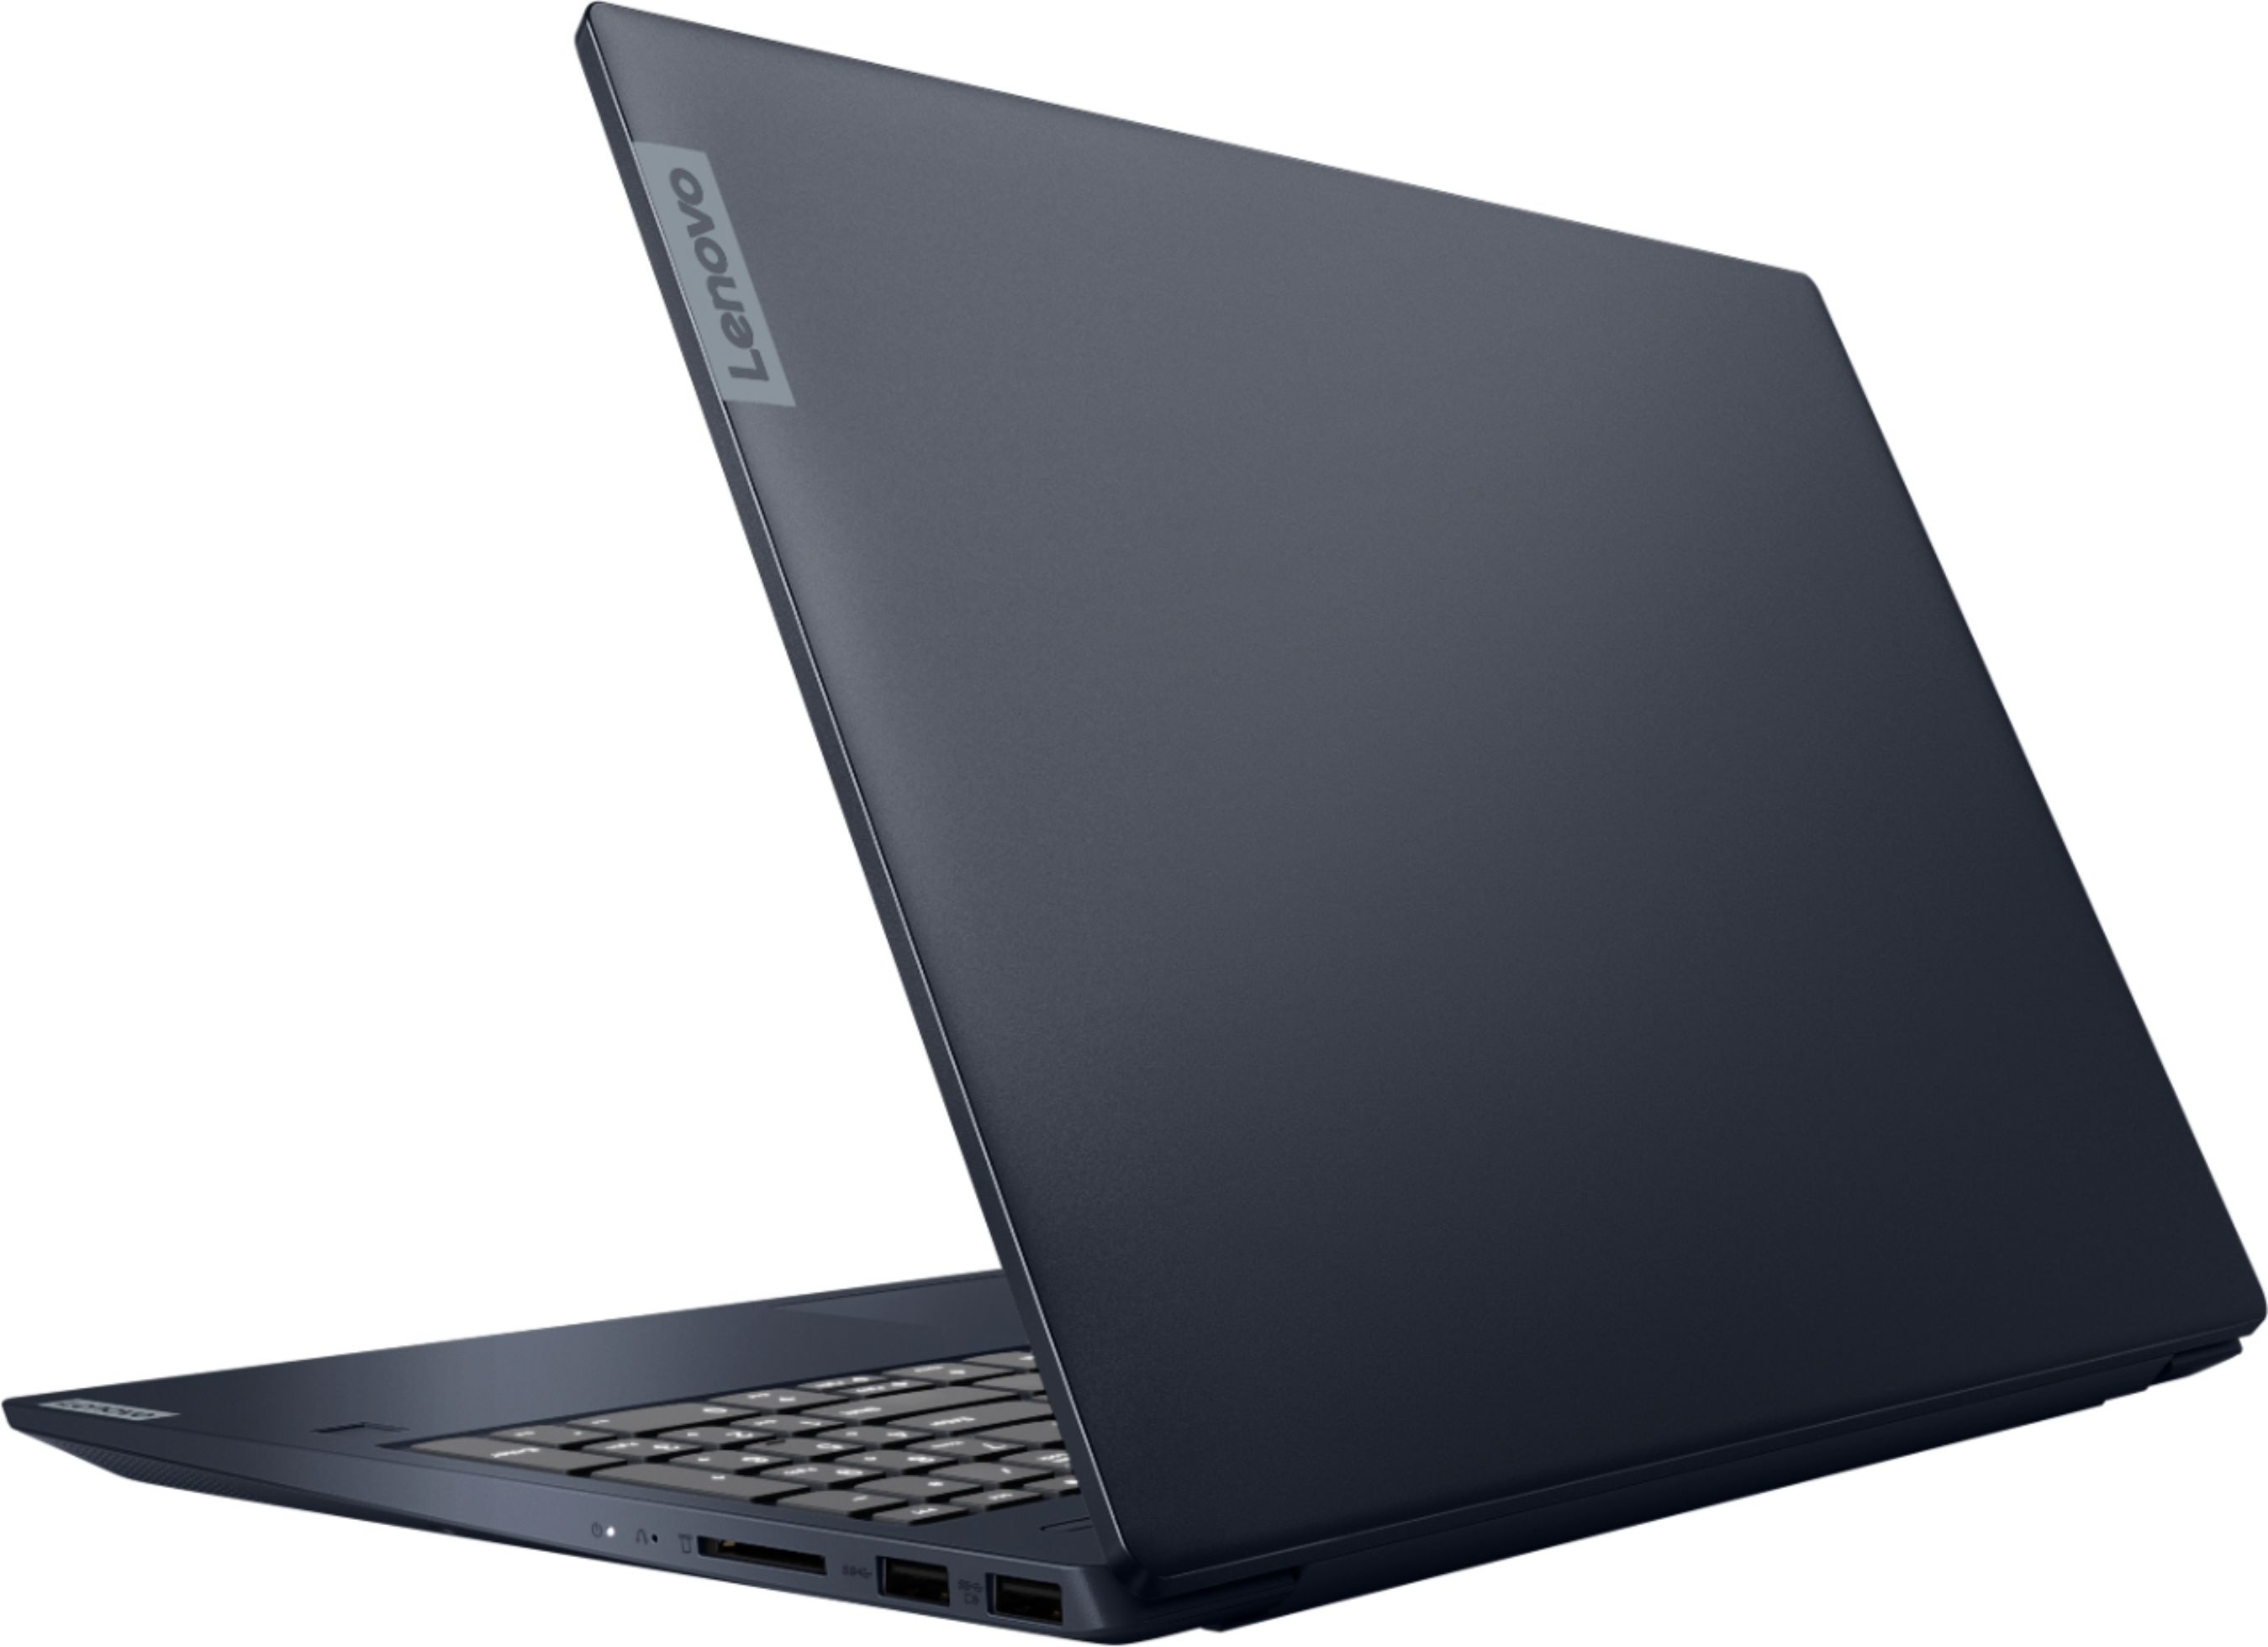 """Alt View Zoom 1. Lenovo - IdeaPad S340 15"""" Touch-Screen Laptop - AMD Ryzen 7 3700U - 12GB Memory - 512GB Solid State Drive - Abyss Blue."""